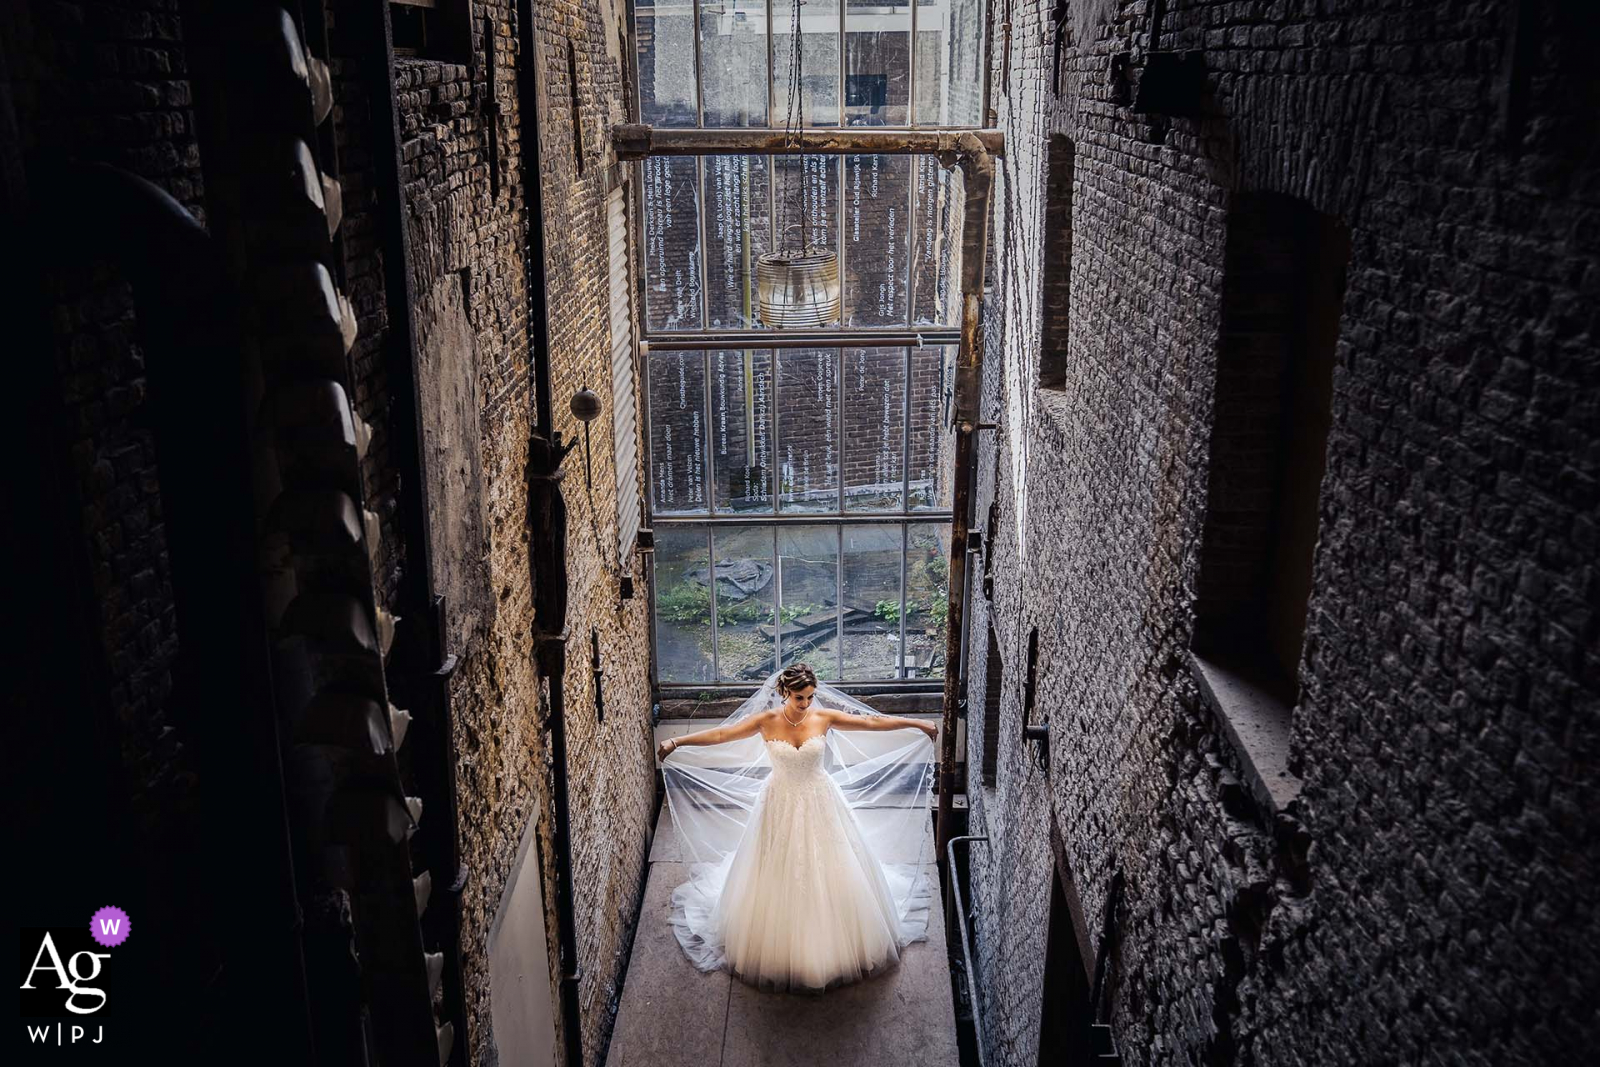 NL artistic wedding photo At the Sodafabriek old factory in Schiedam The Netherlands of The bride showing her dress in the awesome location which is a beautiful contrast